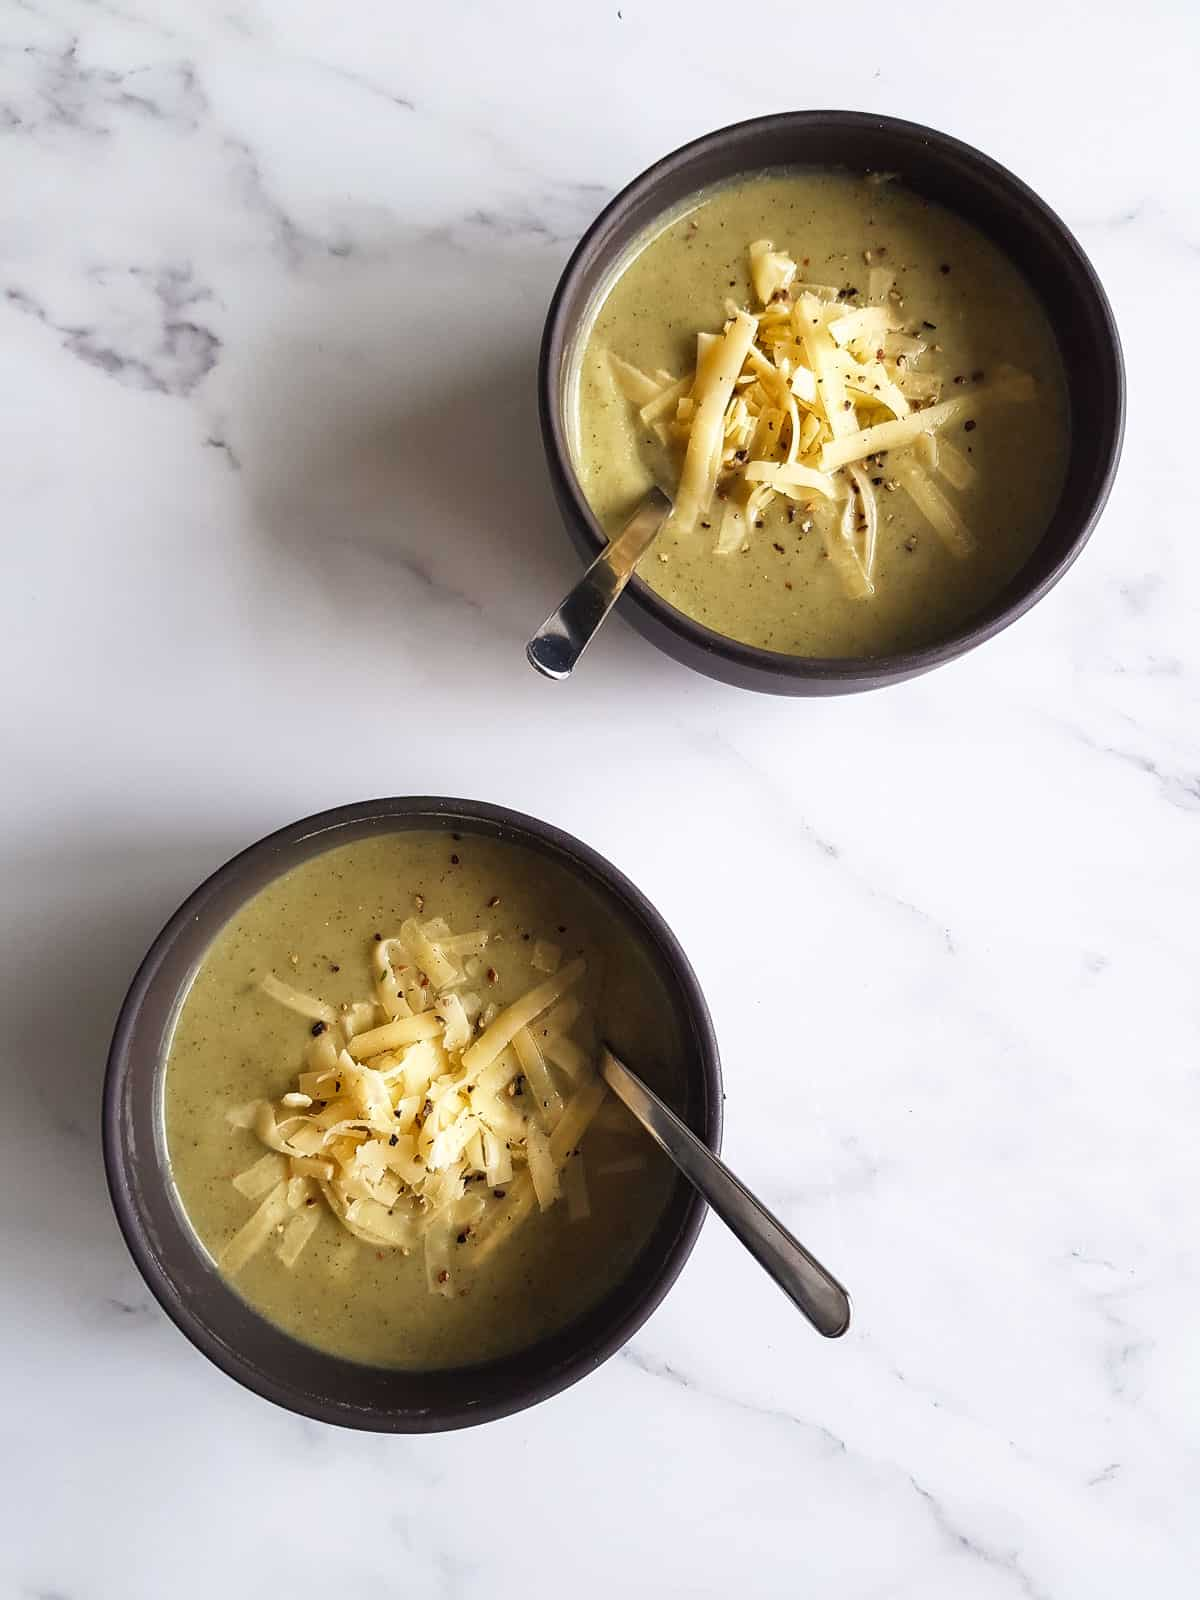 Two bowls of cauliflower broccoli soup with spoons in them.